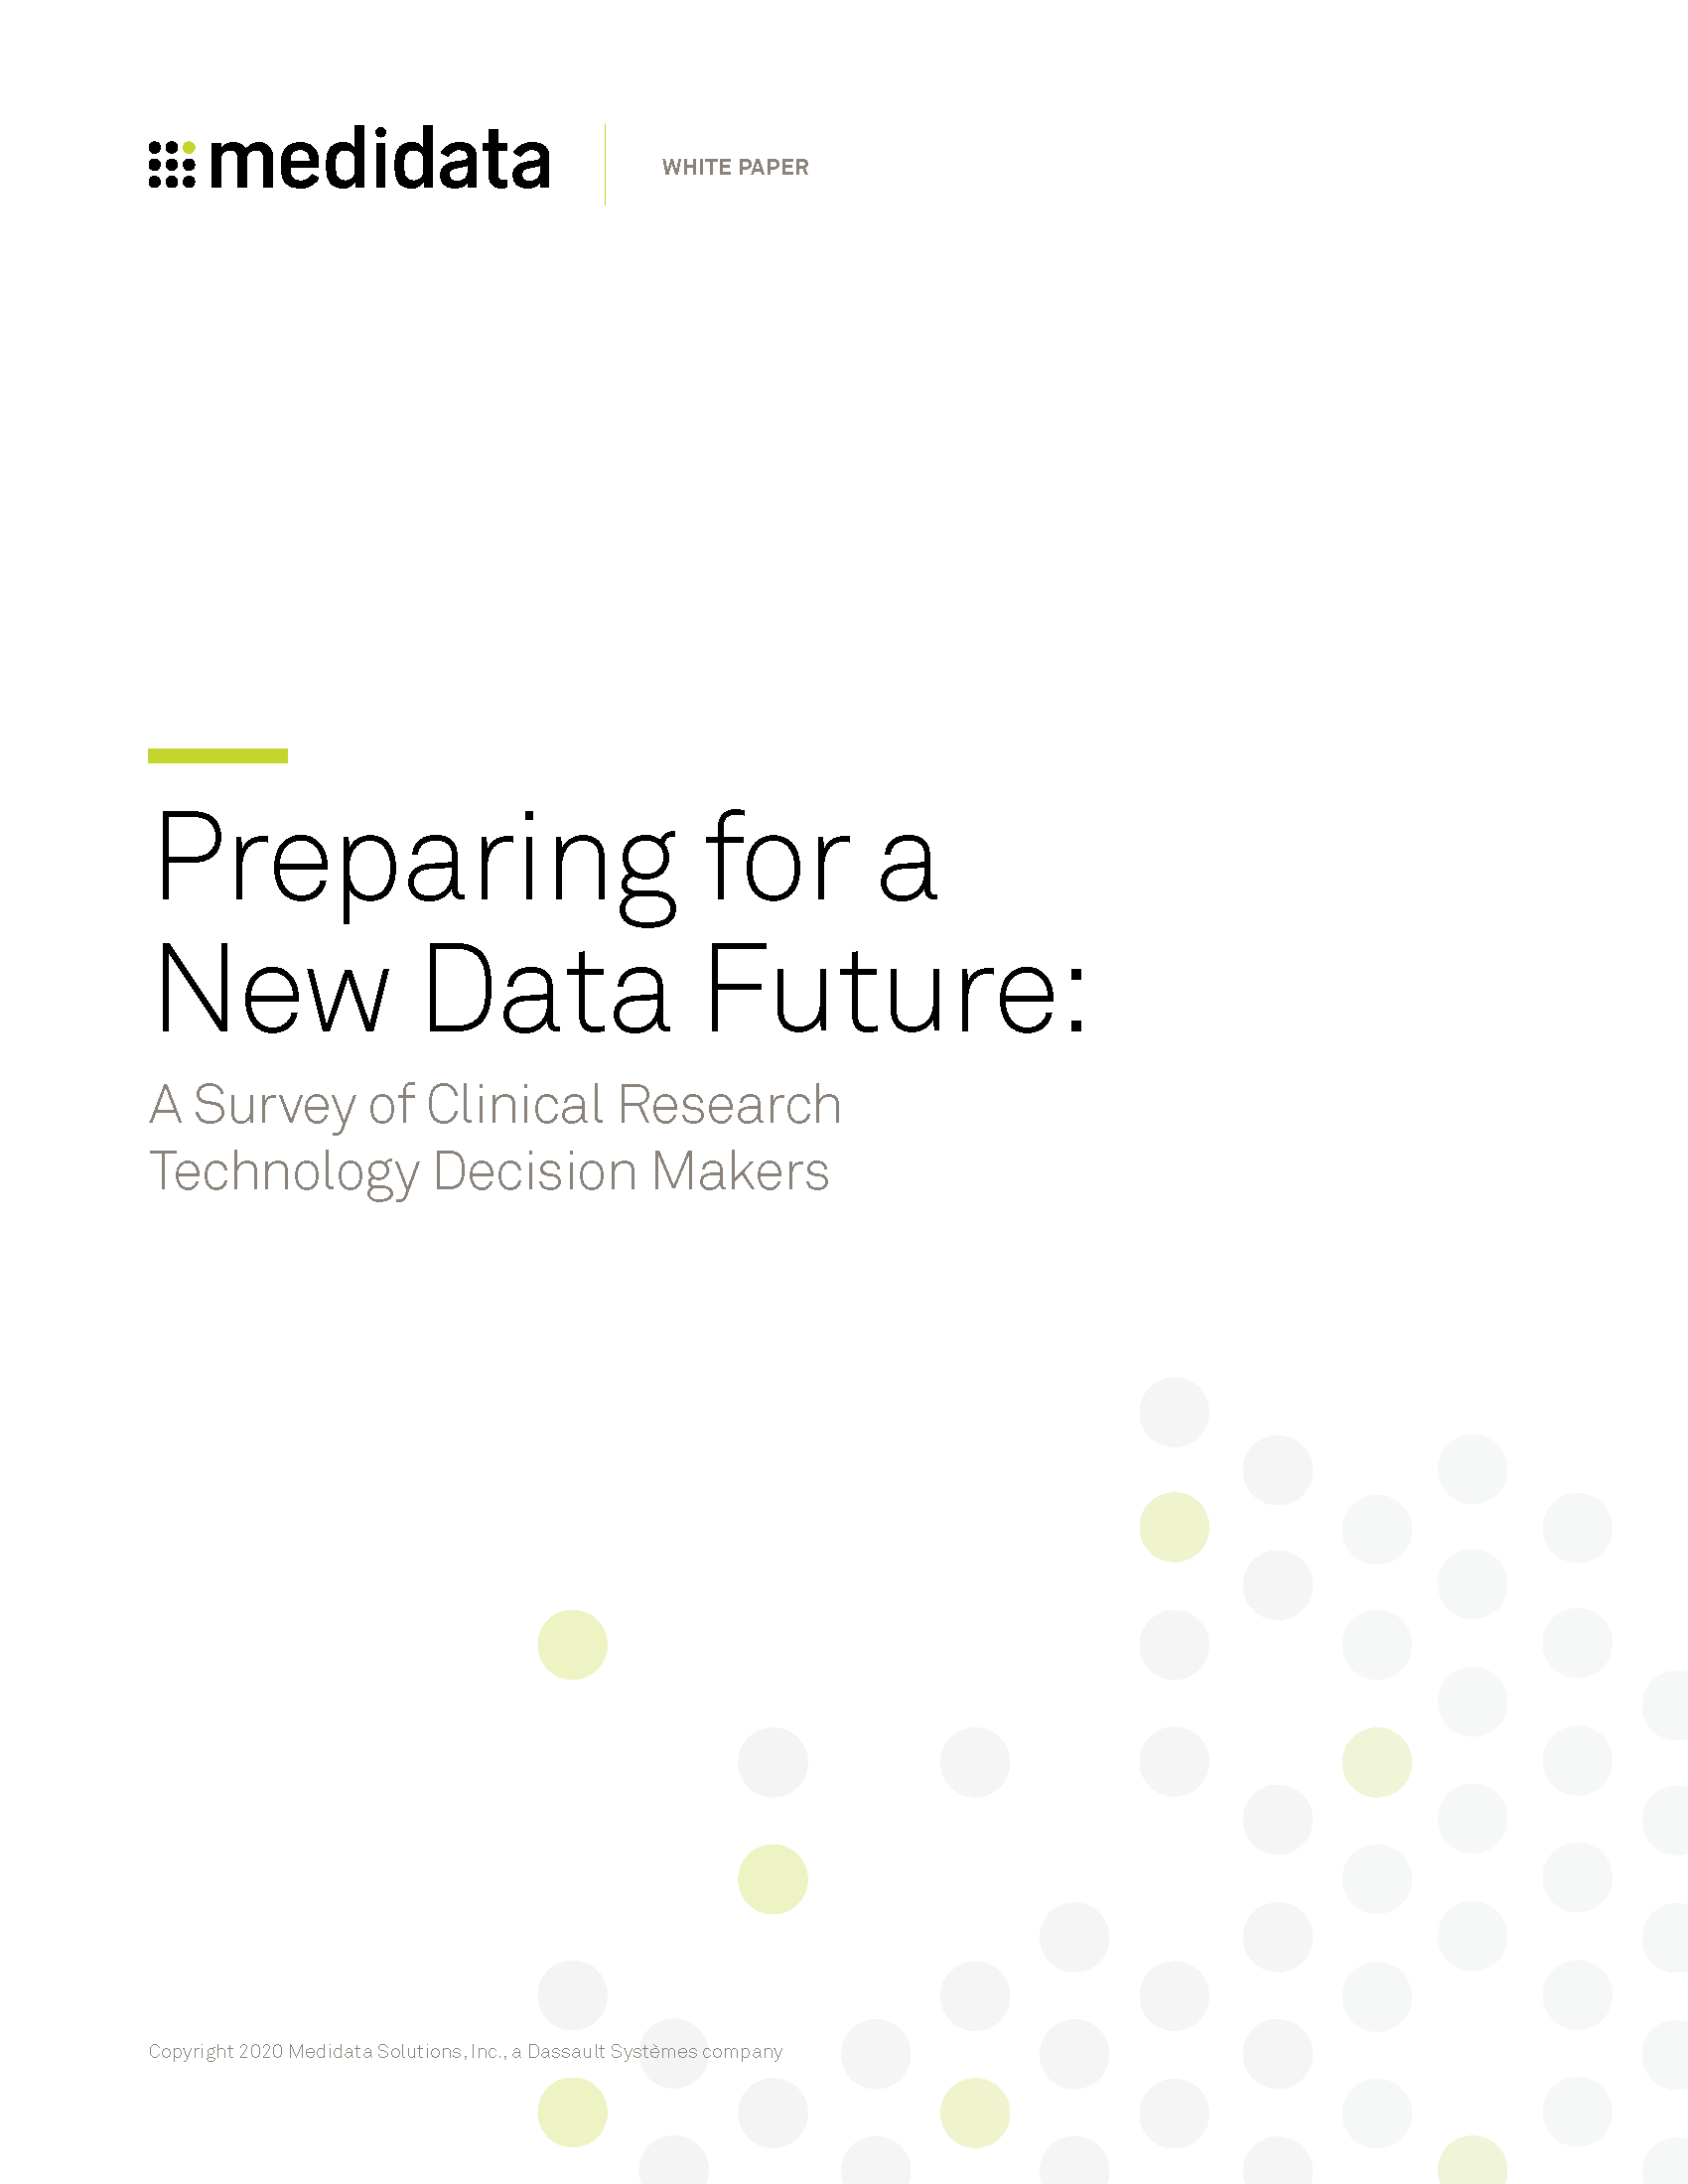 Preparing for a New Data Future: A Survey of Clinical Research Technology Decision Makers